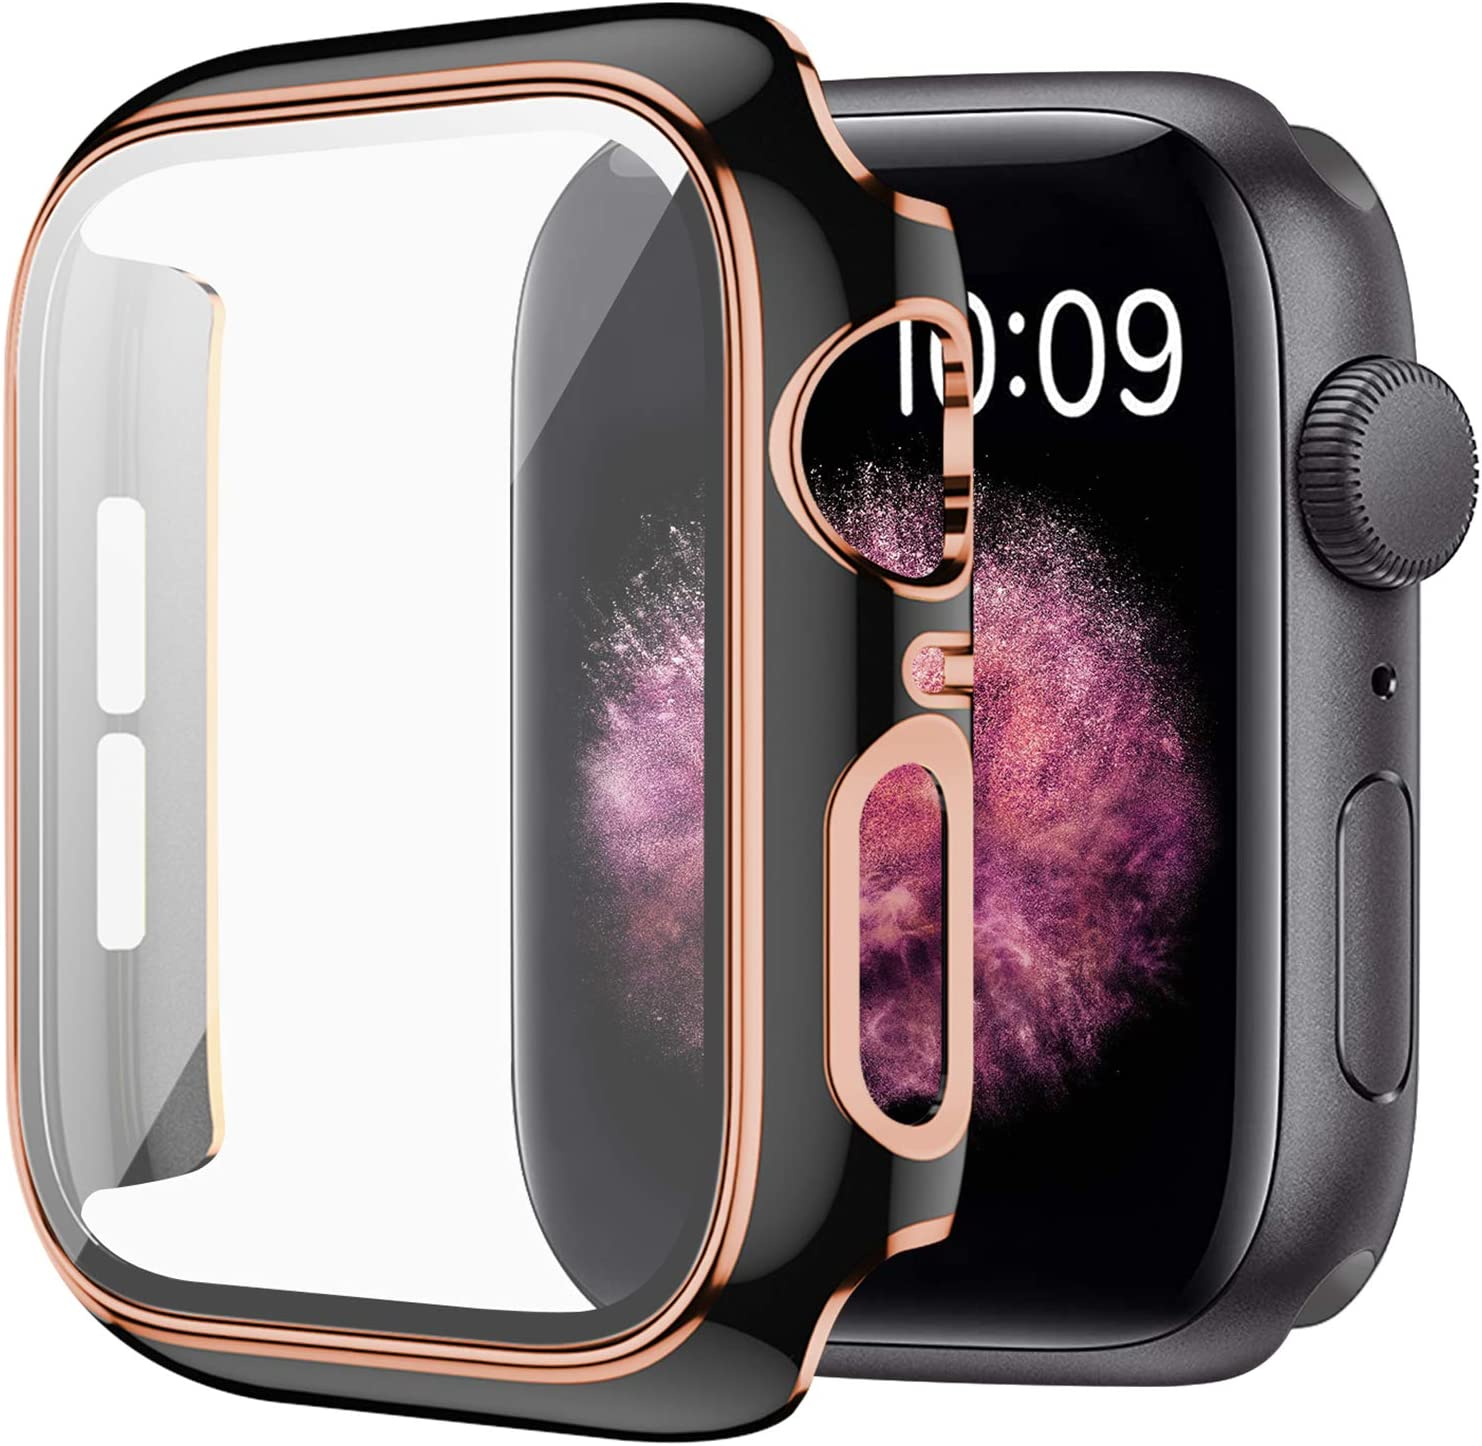 WETAL Hard Protective Cover Compatible with Apple Watch Case Series 6 / SE / Series 5 / Series 4 40mm 44mm with Built in HD Clear Tempered Glass Screen Protector (44mm Black)